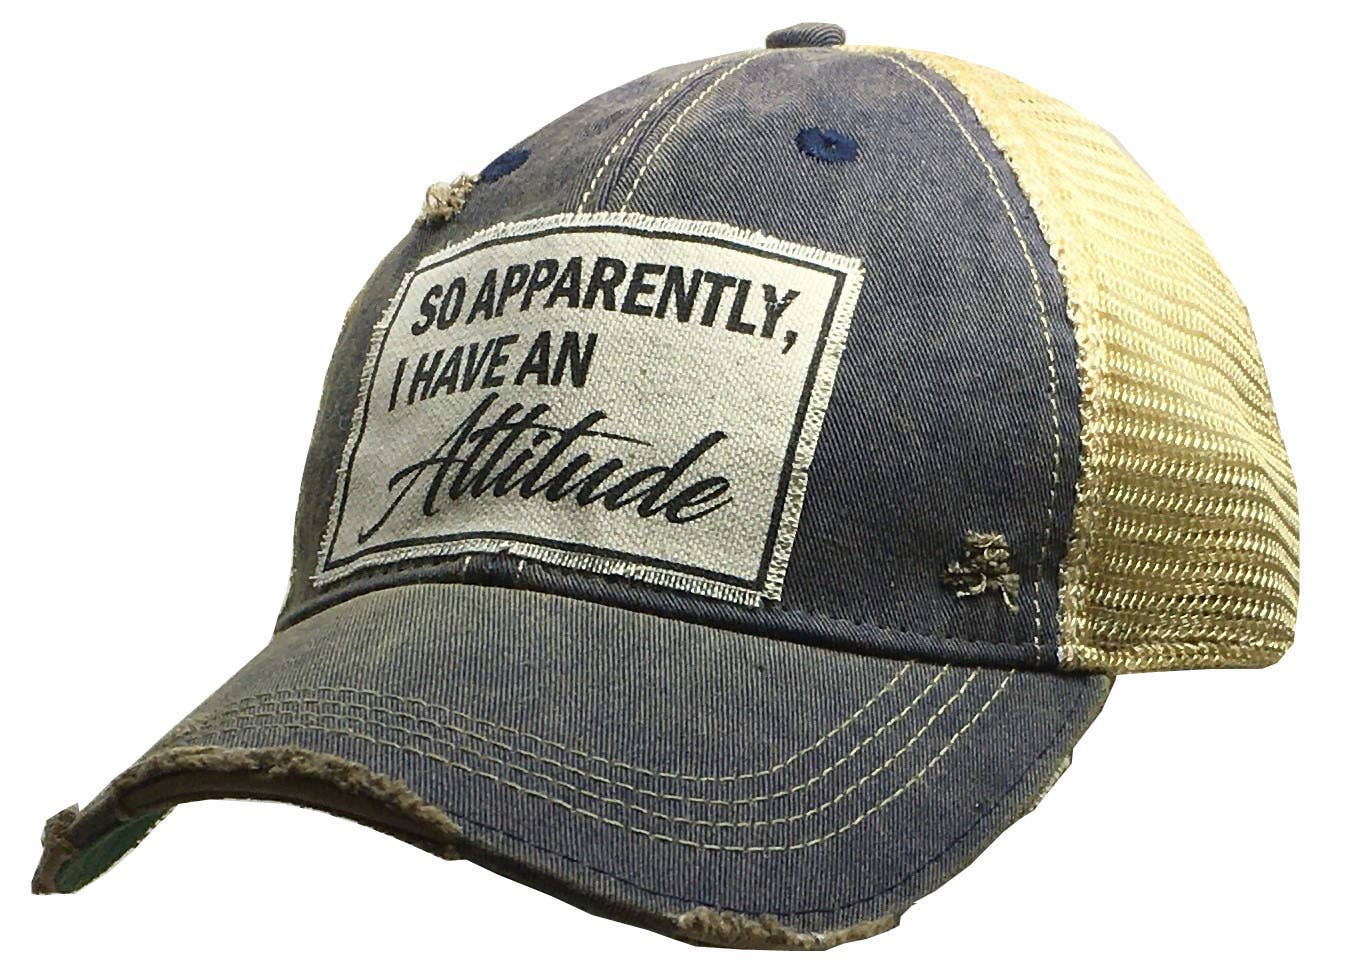 So Apparently, I Have An Attitude Trucker Hat Baseball Cap